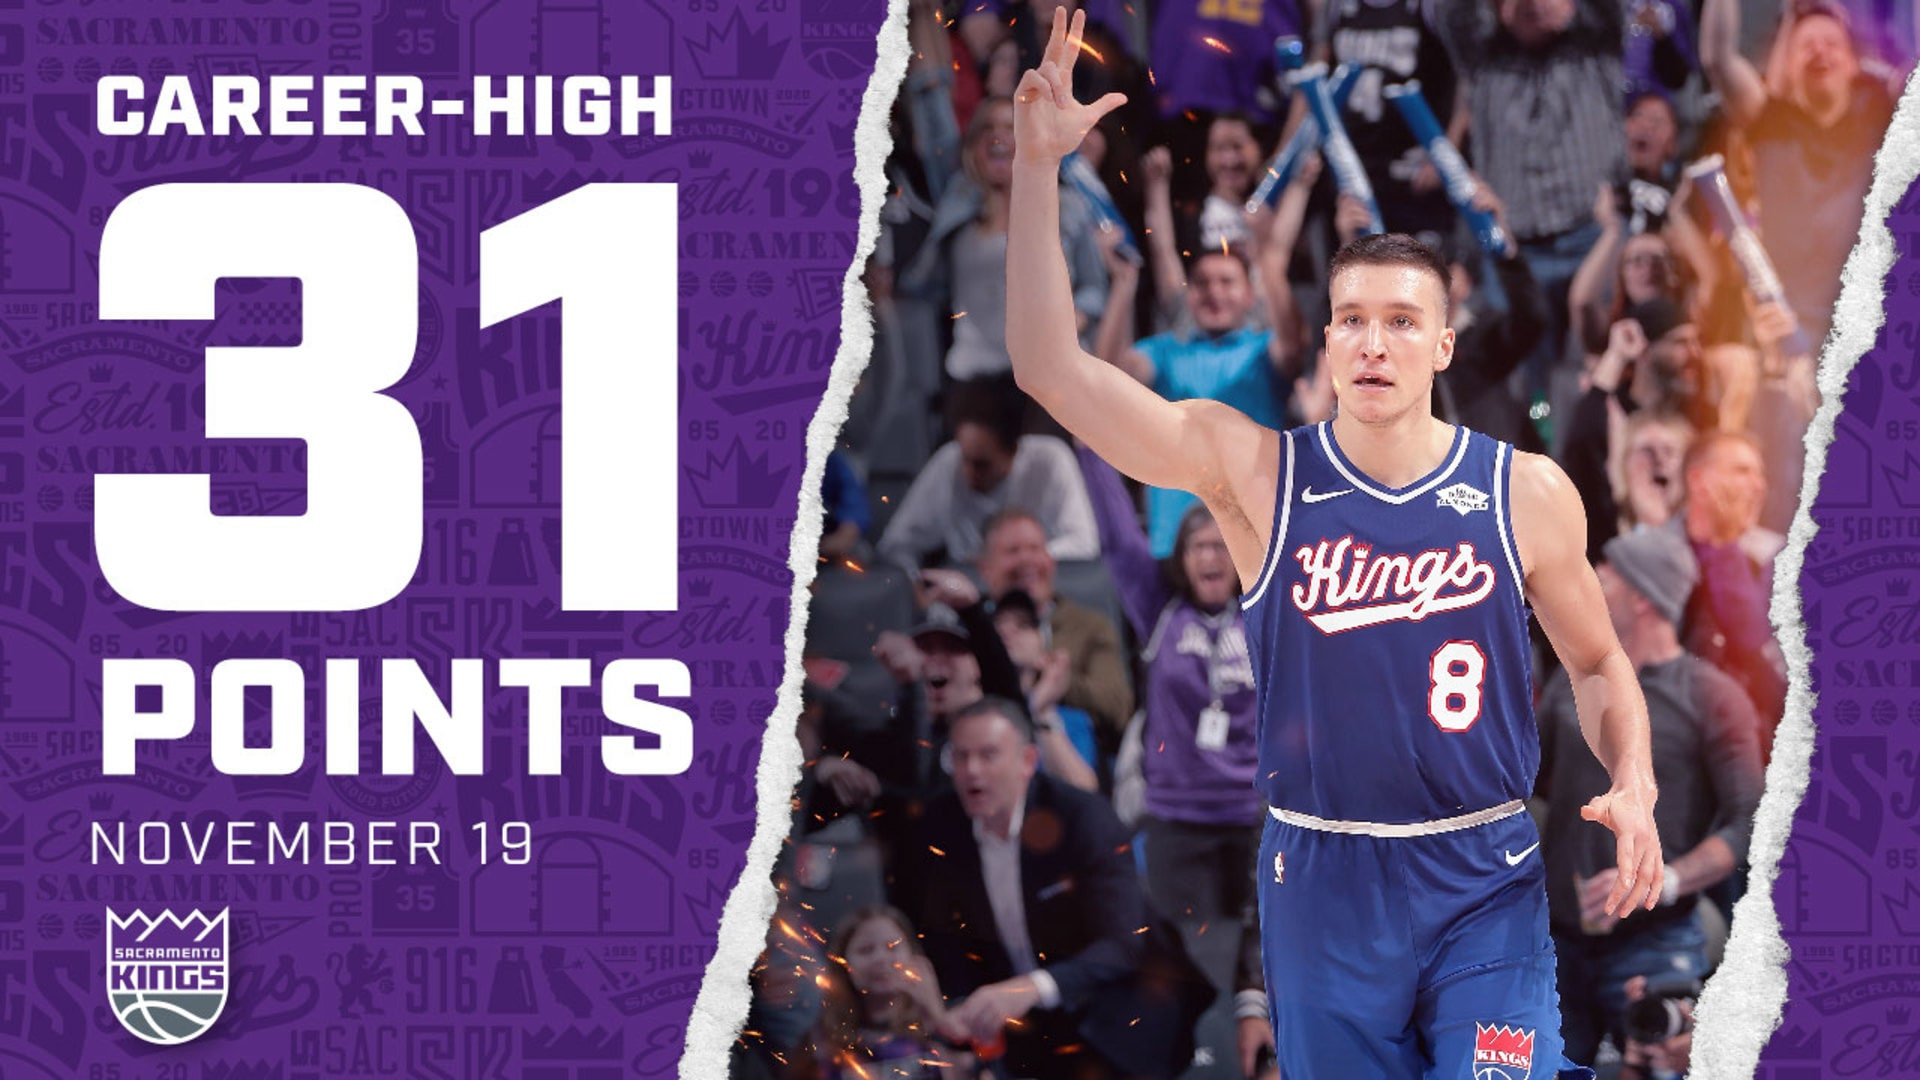 Bogi Finishes with a CAREER-HIGH 31 Points | Kings vs Suns